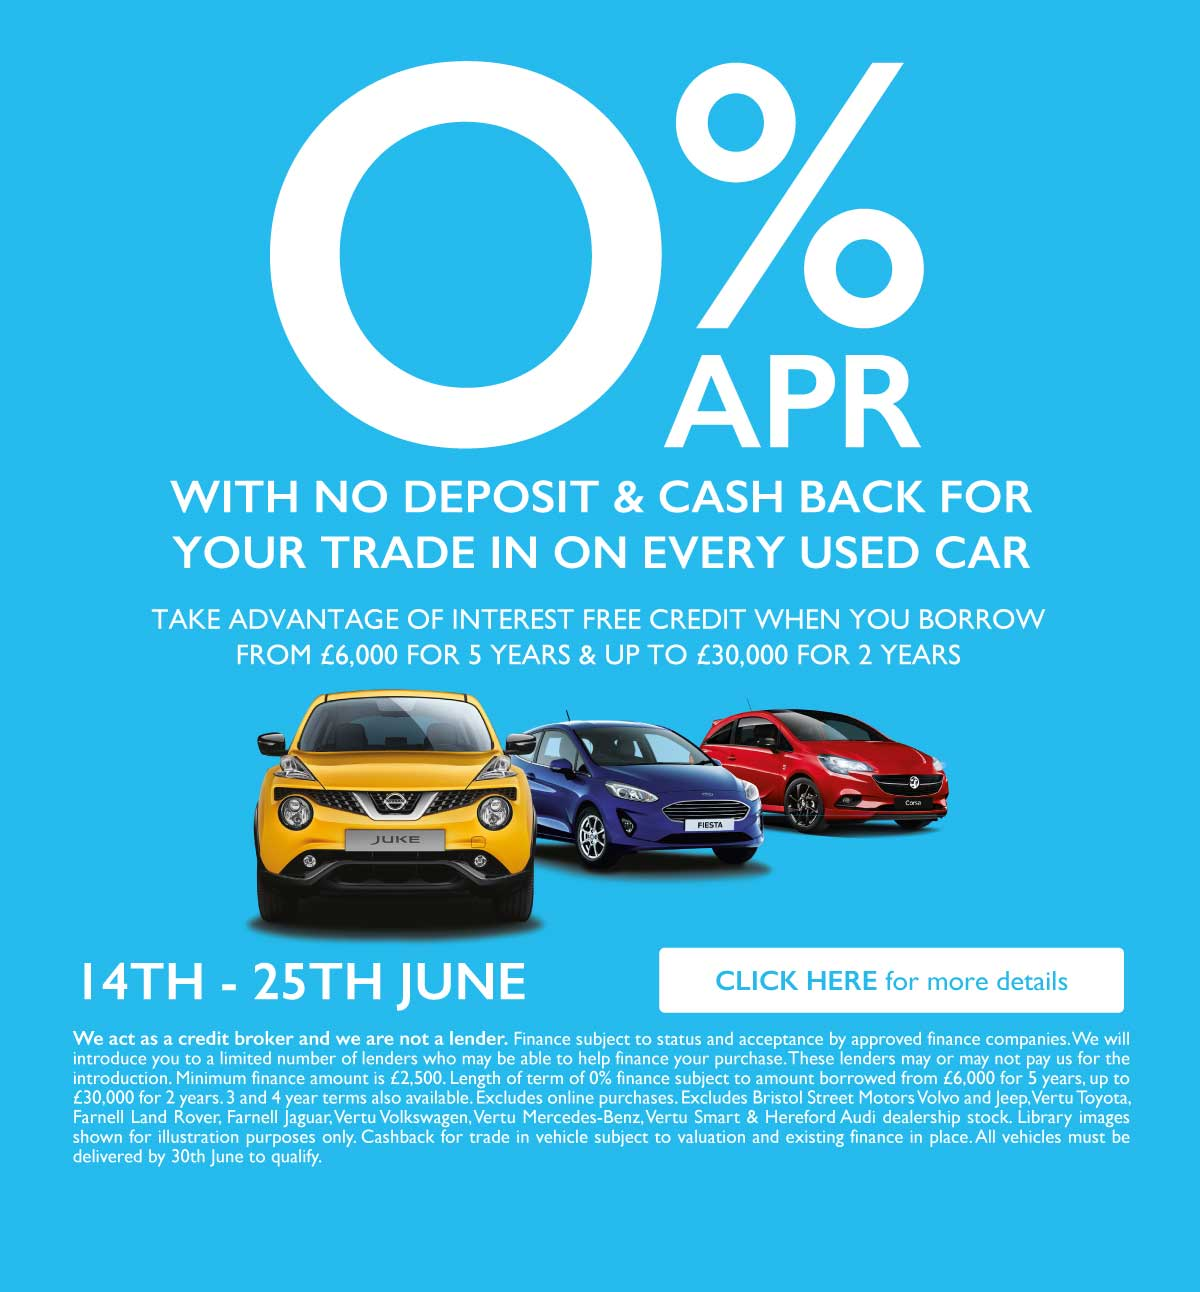 0% Used Car Event June 2019 - BSM Peugeot